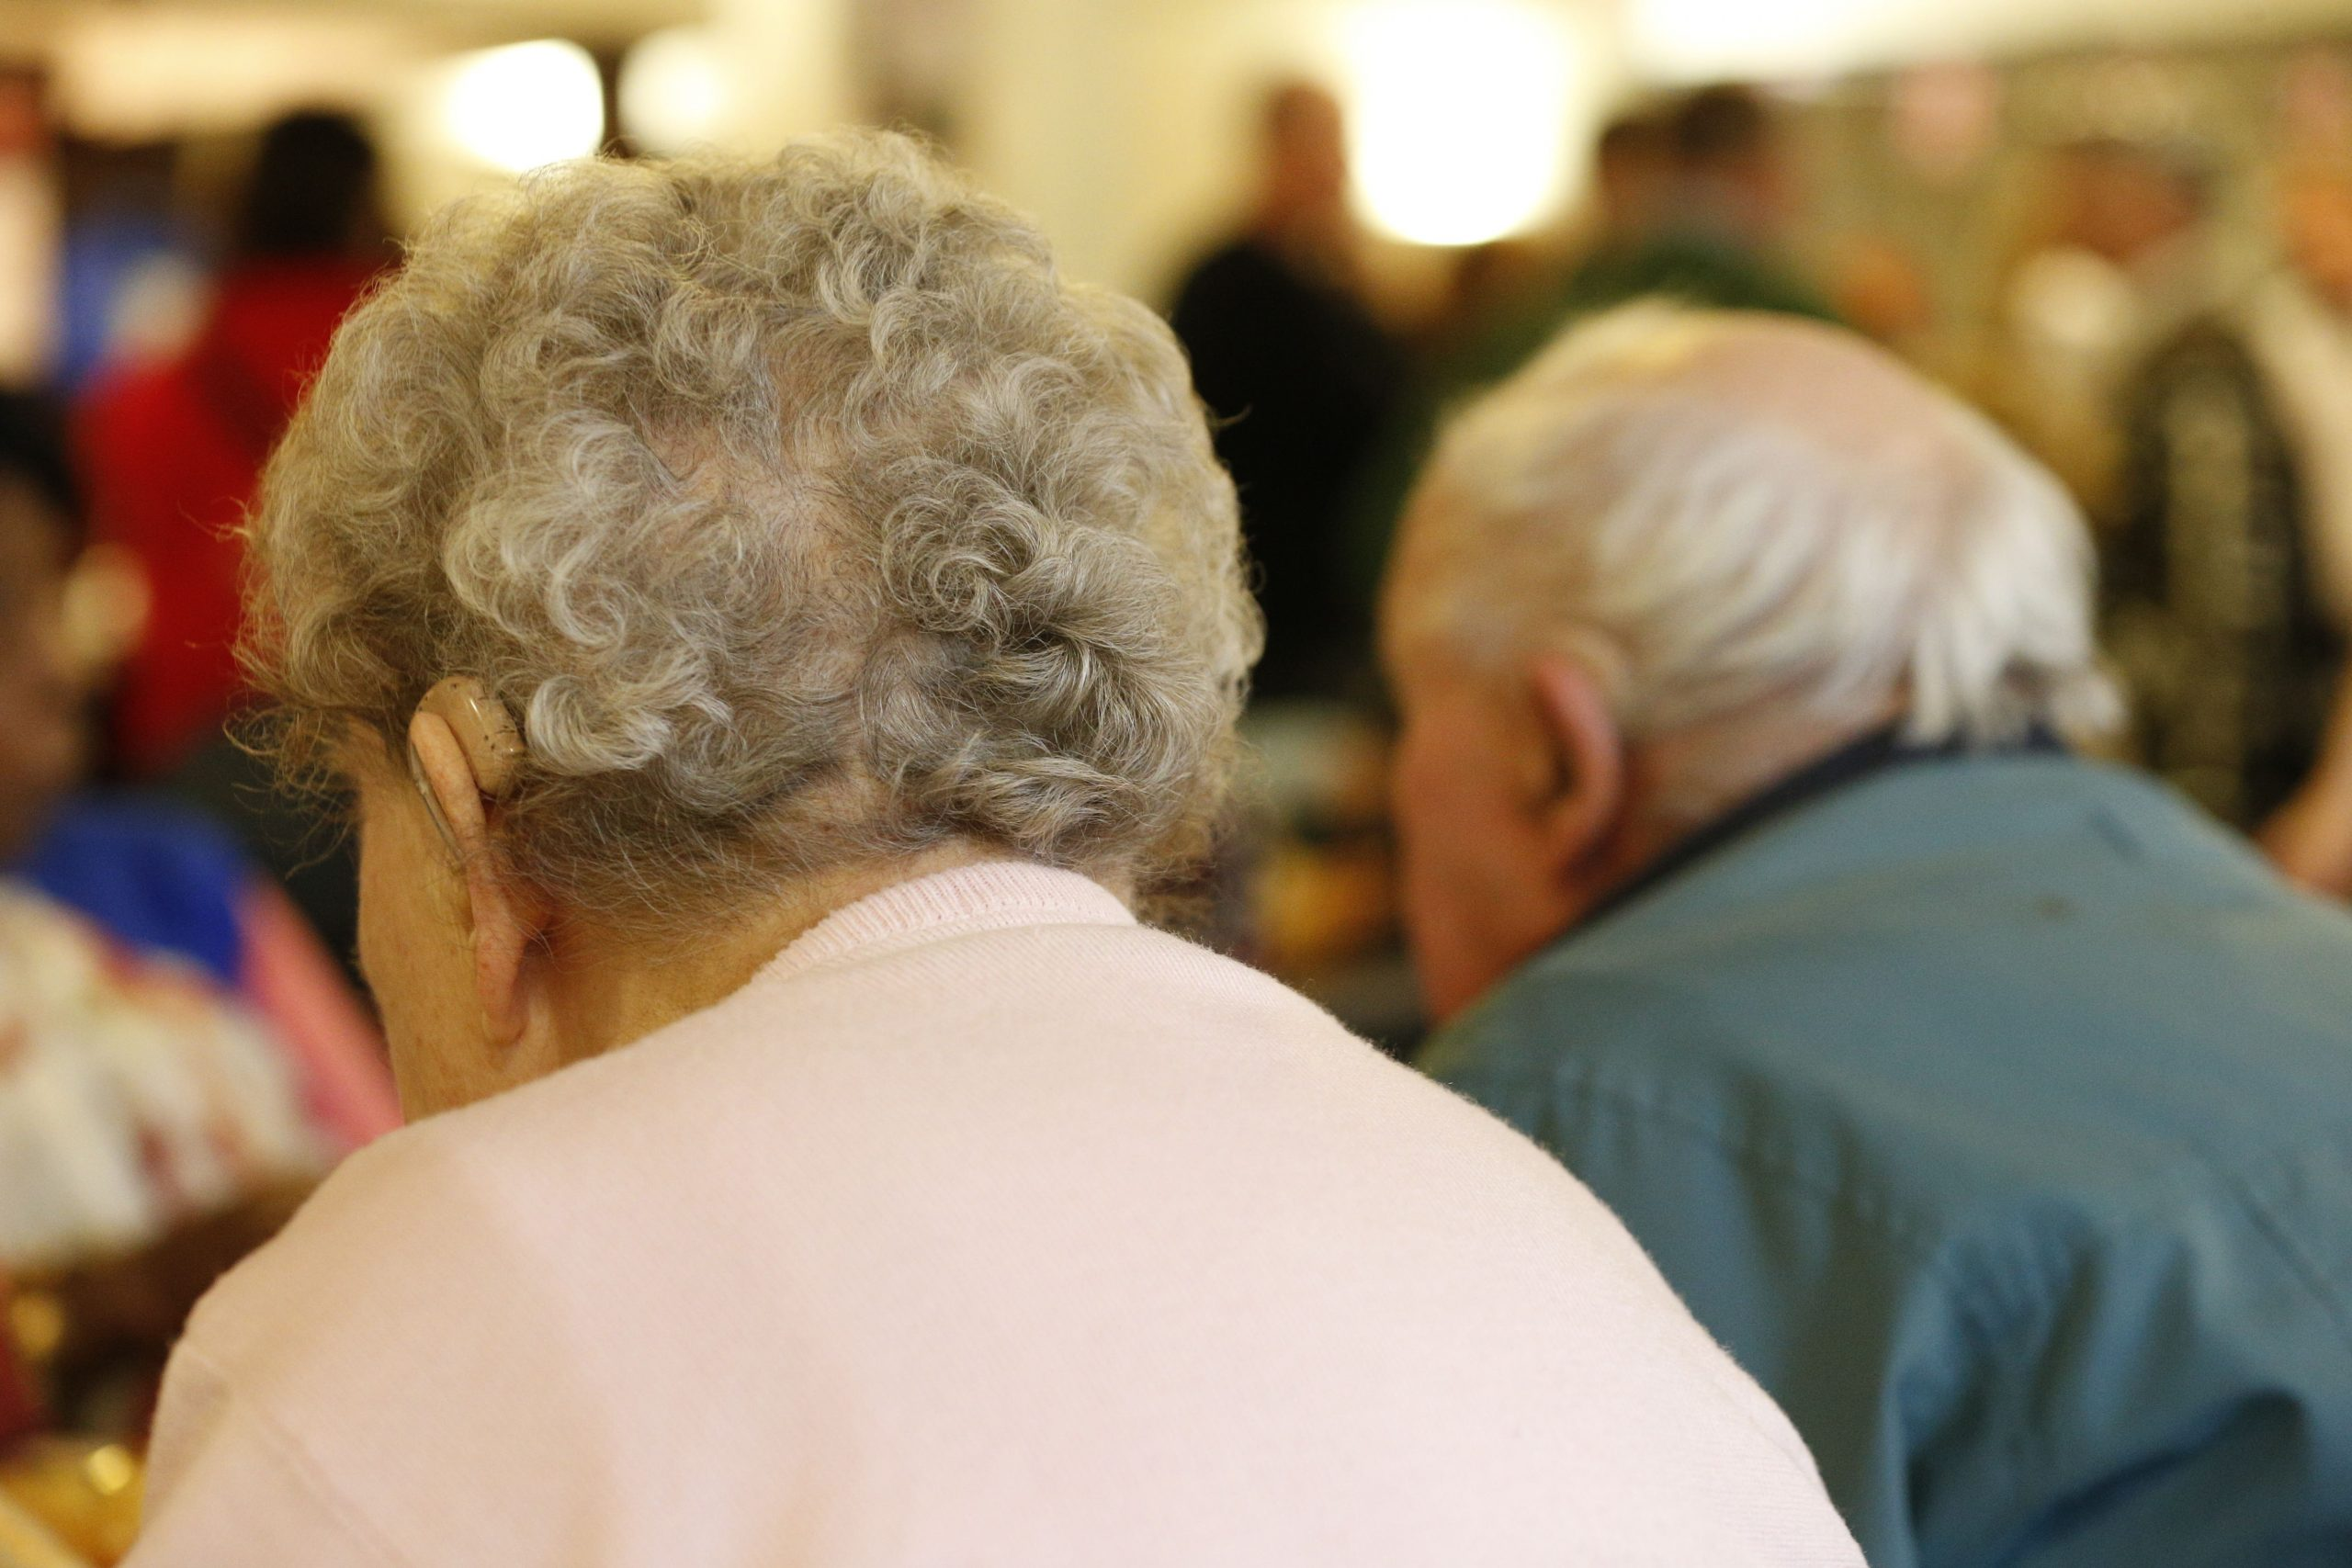 Read more about the article Social care reform measures not detailed in Queen's Speech